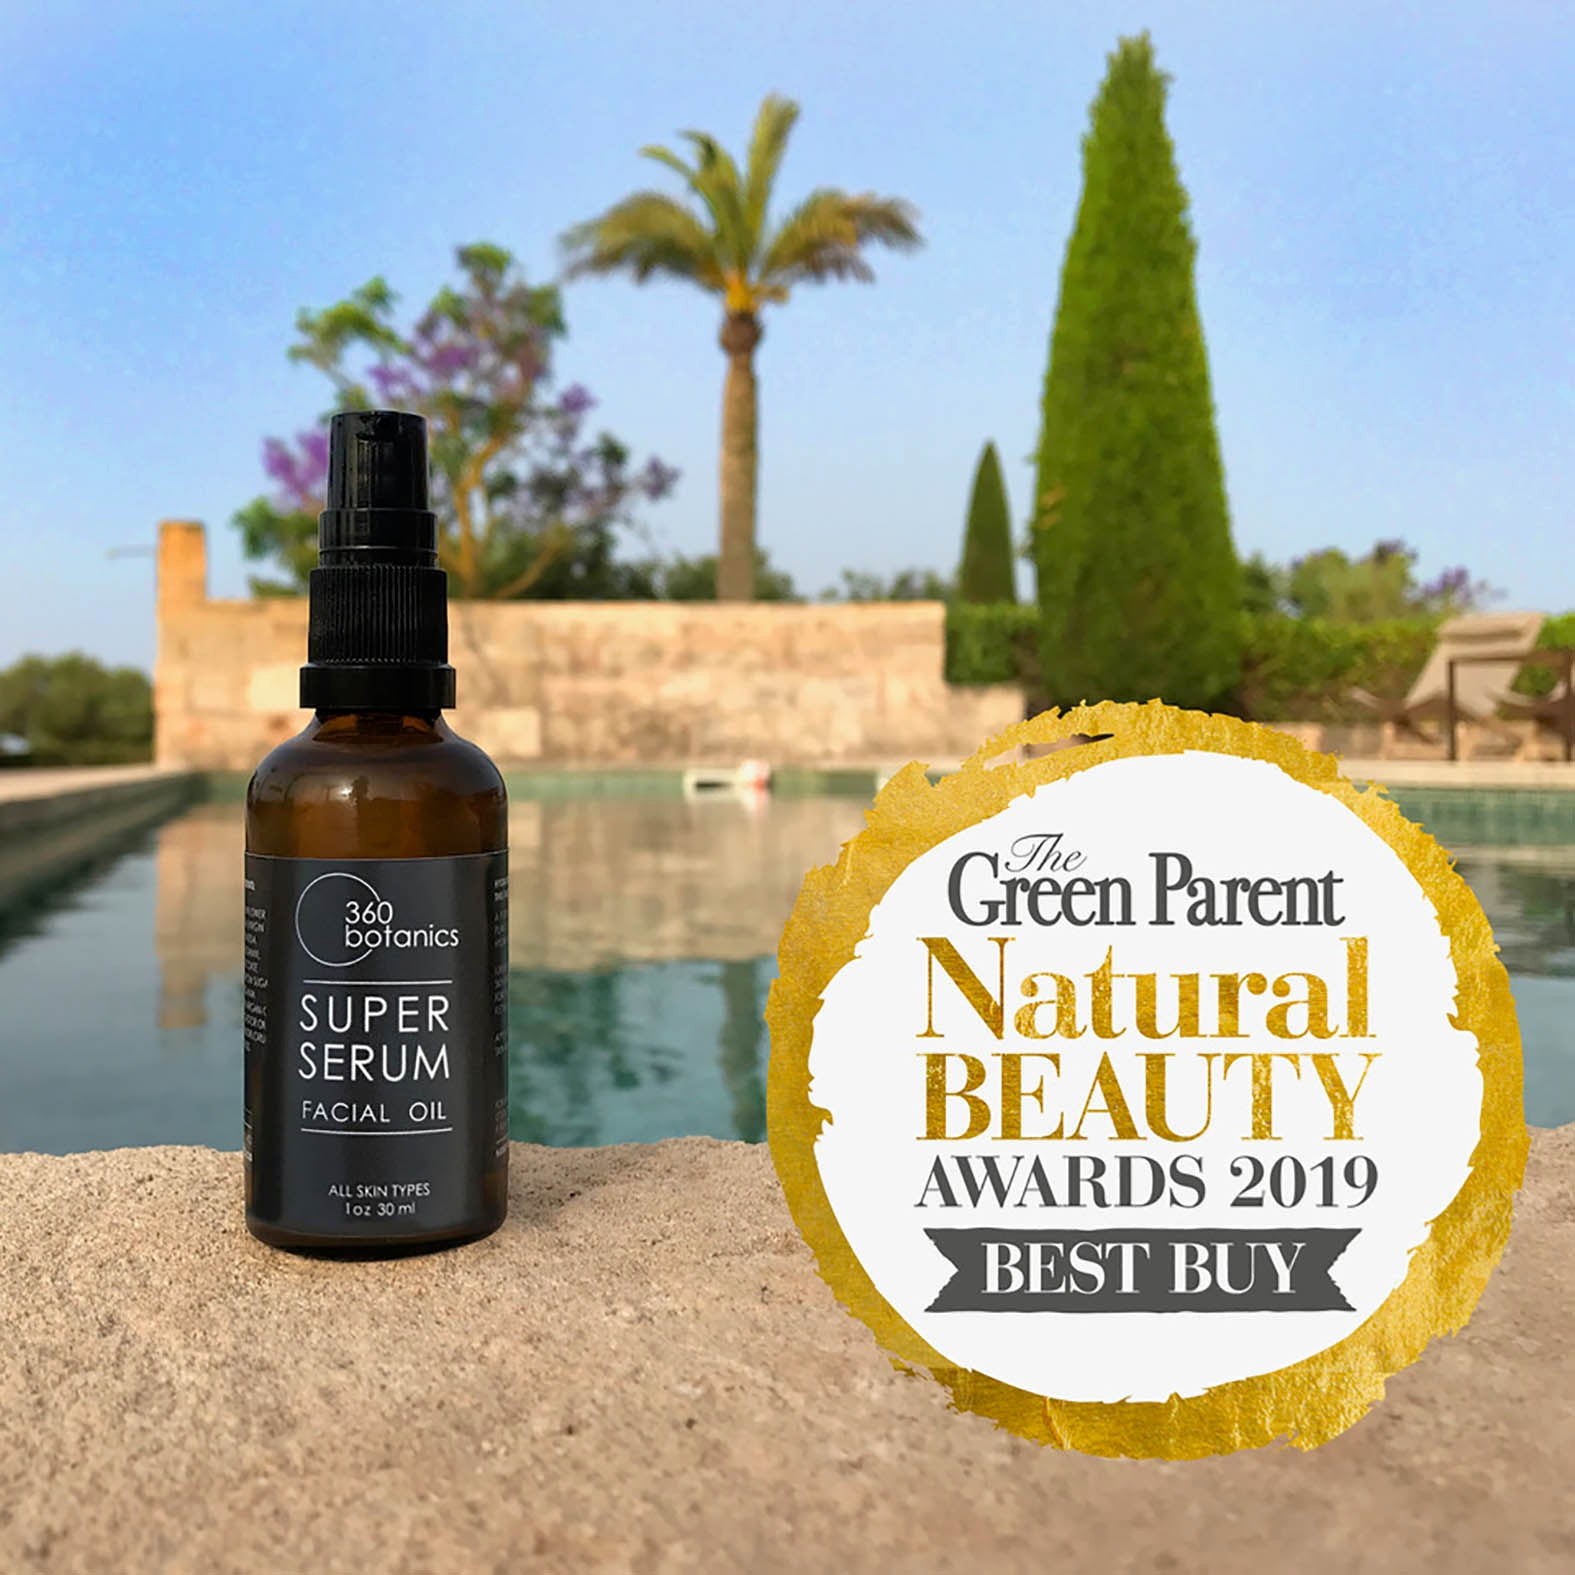 Super Serum - Award Winning Facial Oil